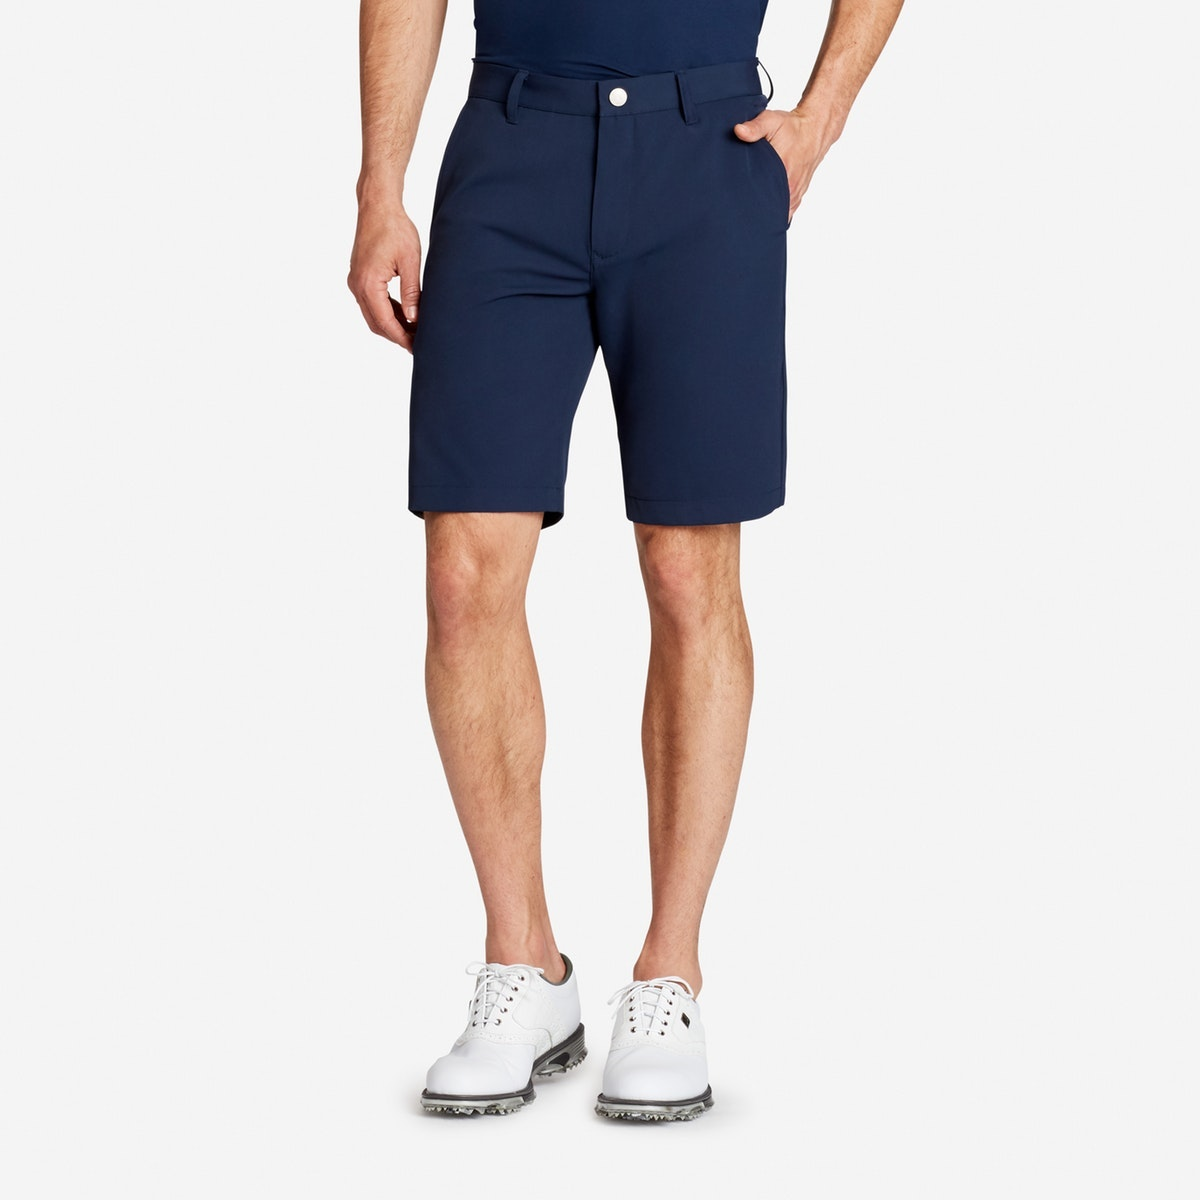 Highland Tour Golf Shorts